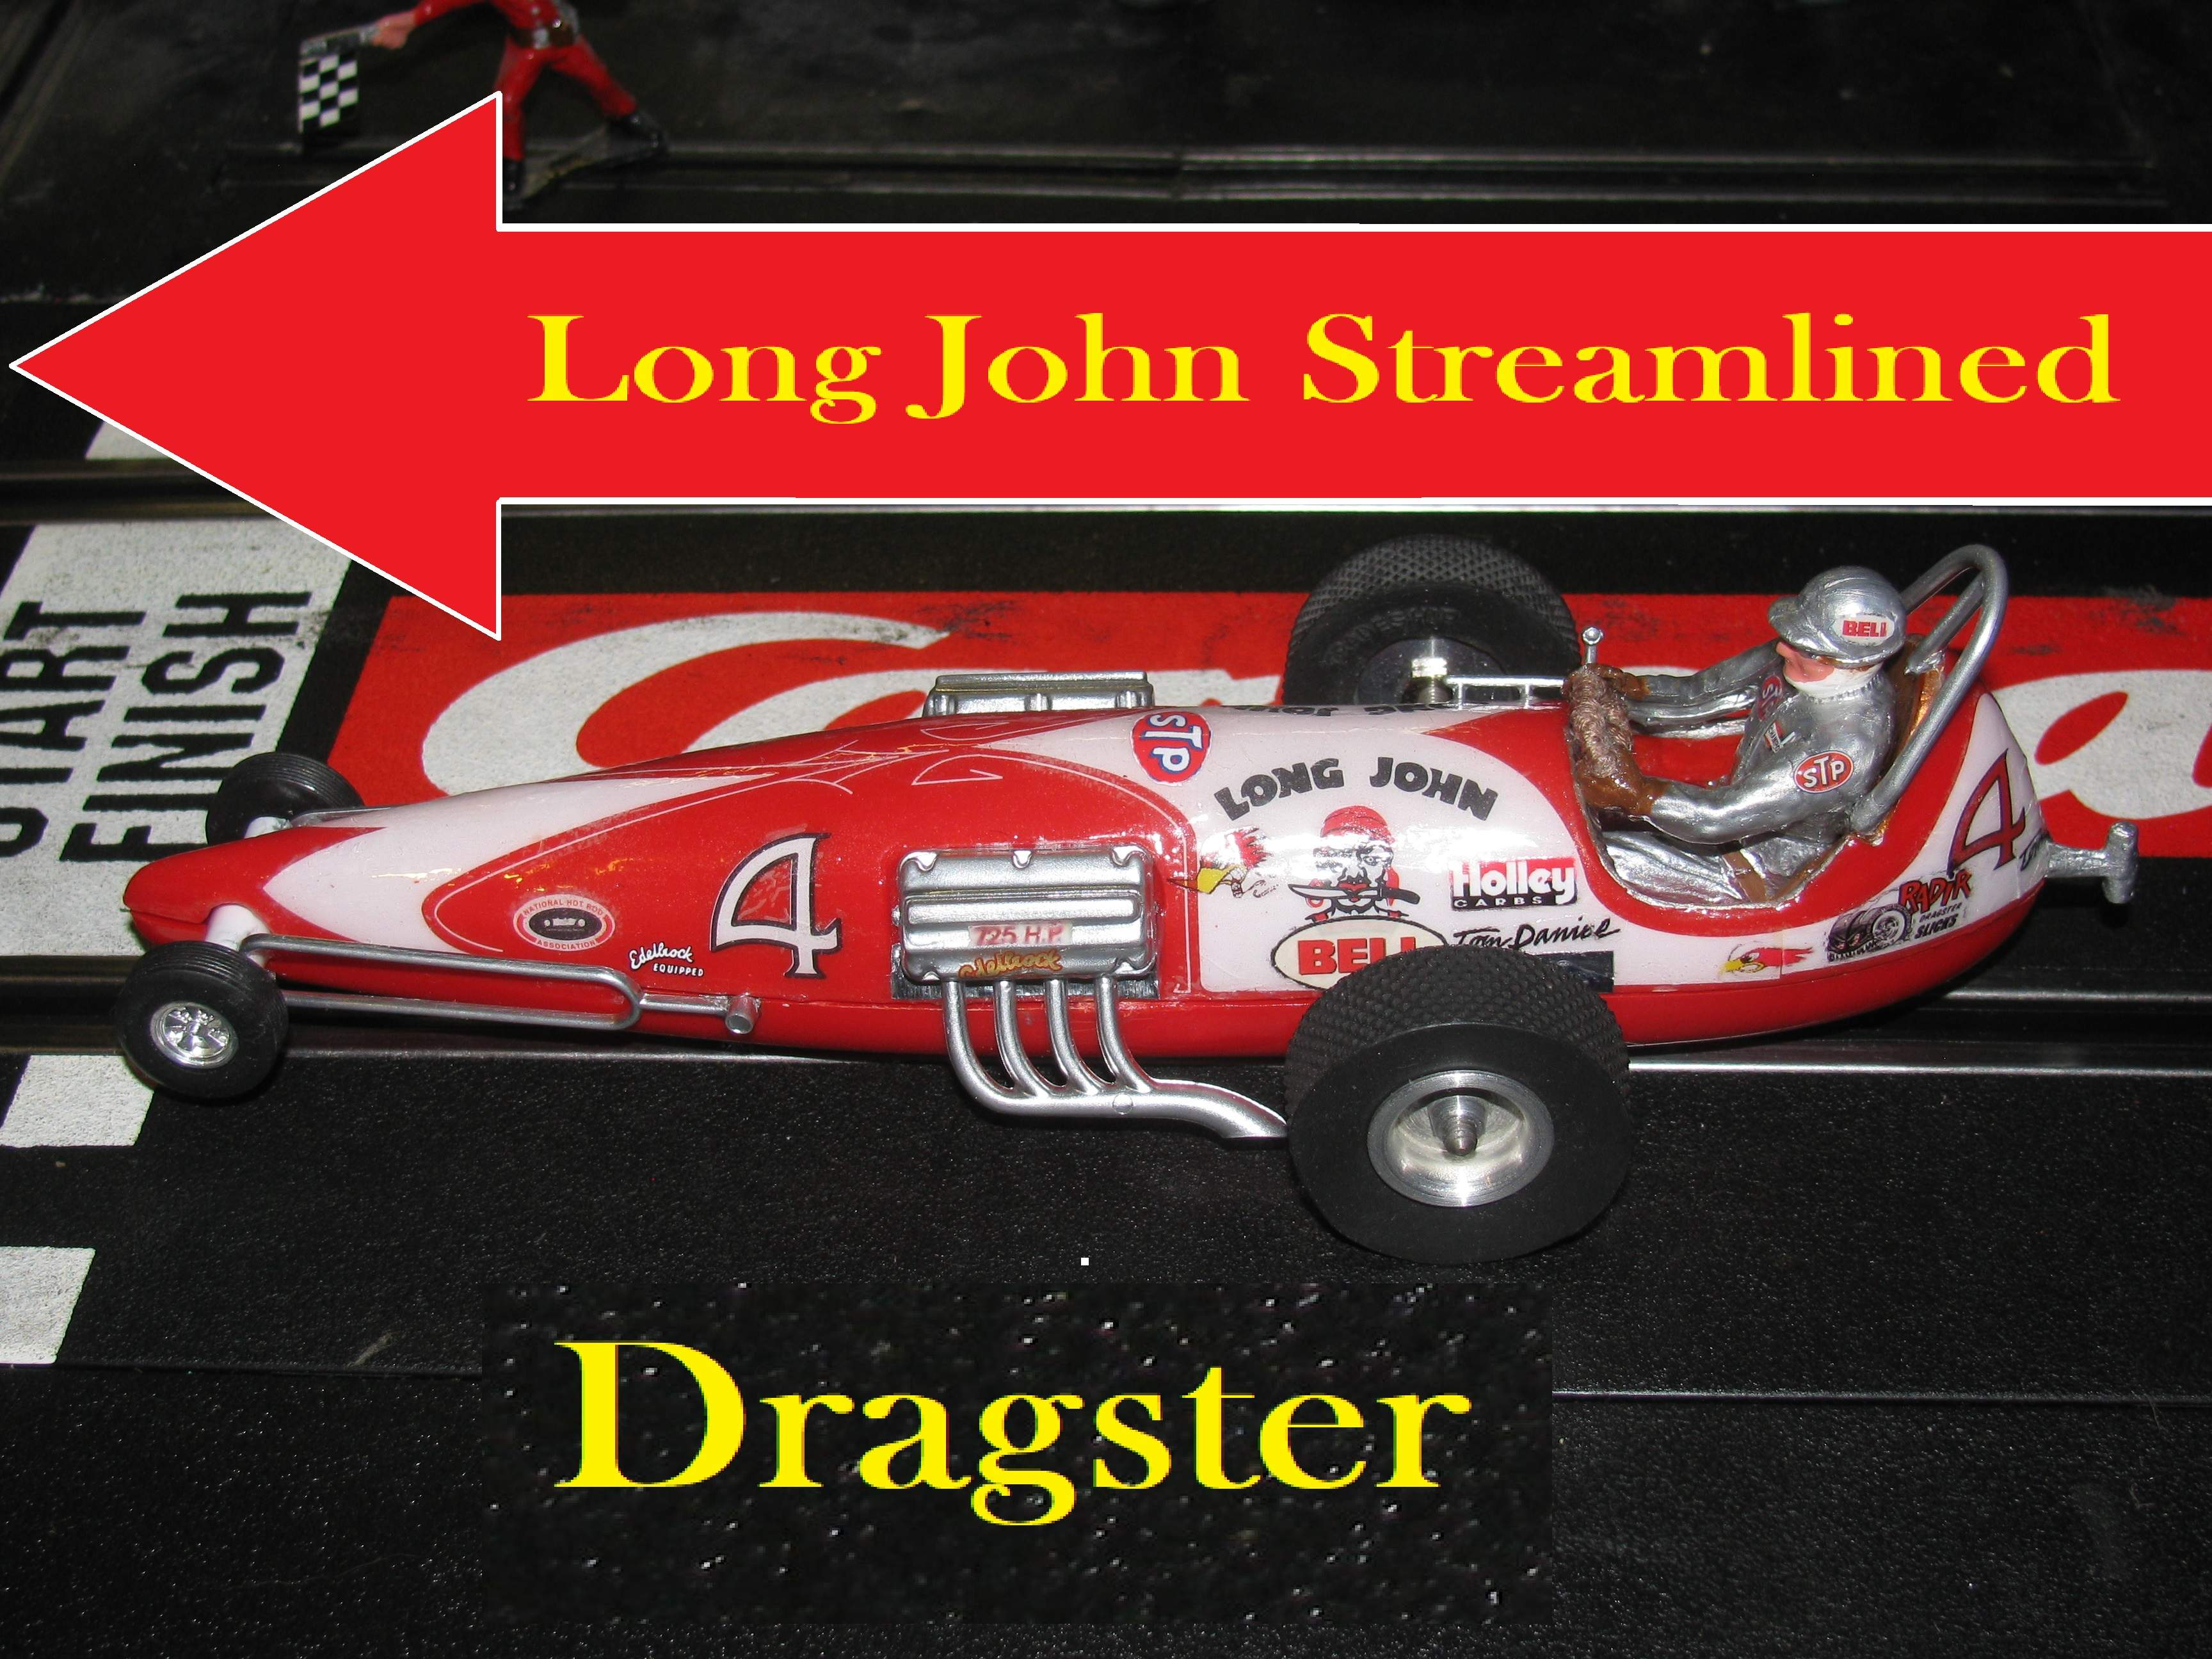 *SOLD* Vintage Monogram Revell Long John Streamline Dragster Slot Car 1/32 Scale – Red – Car #4 X